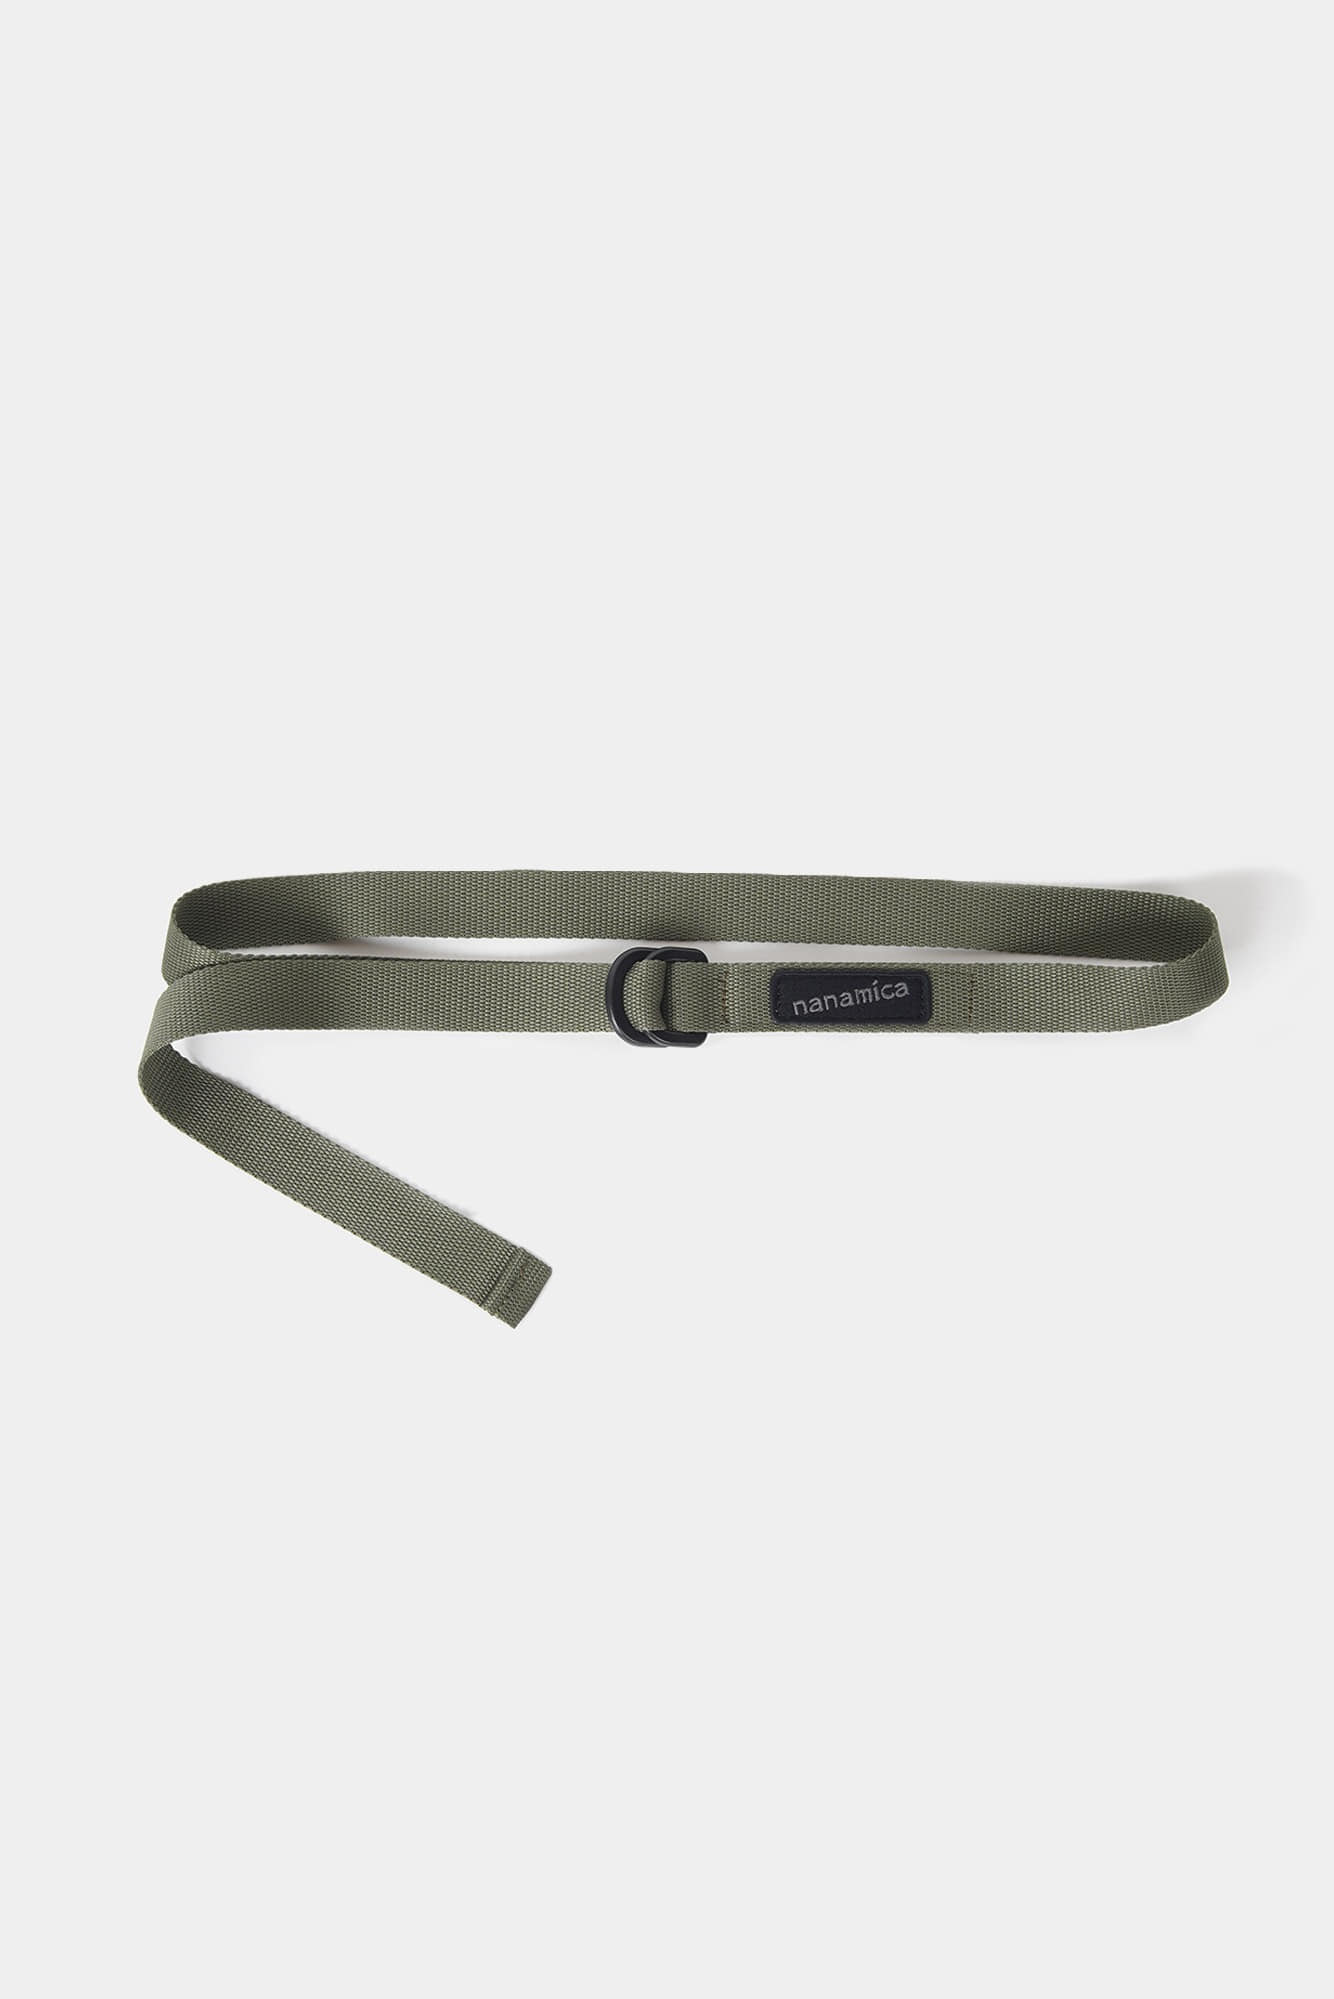 "NANAMICA nanamican Tech Belt ""Khaki"""